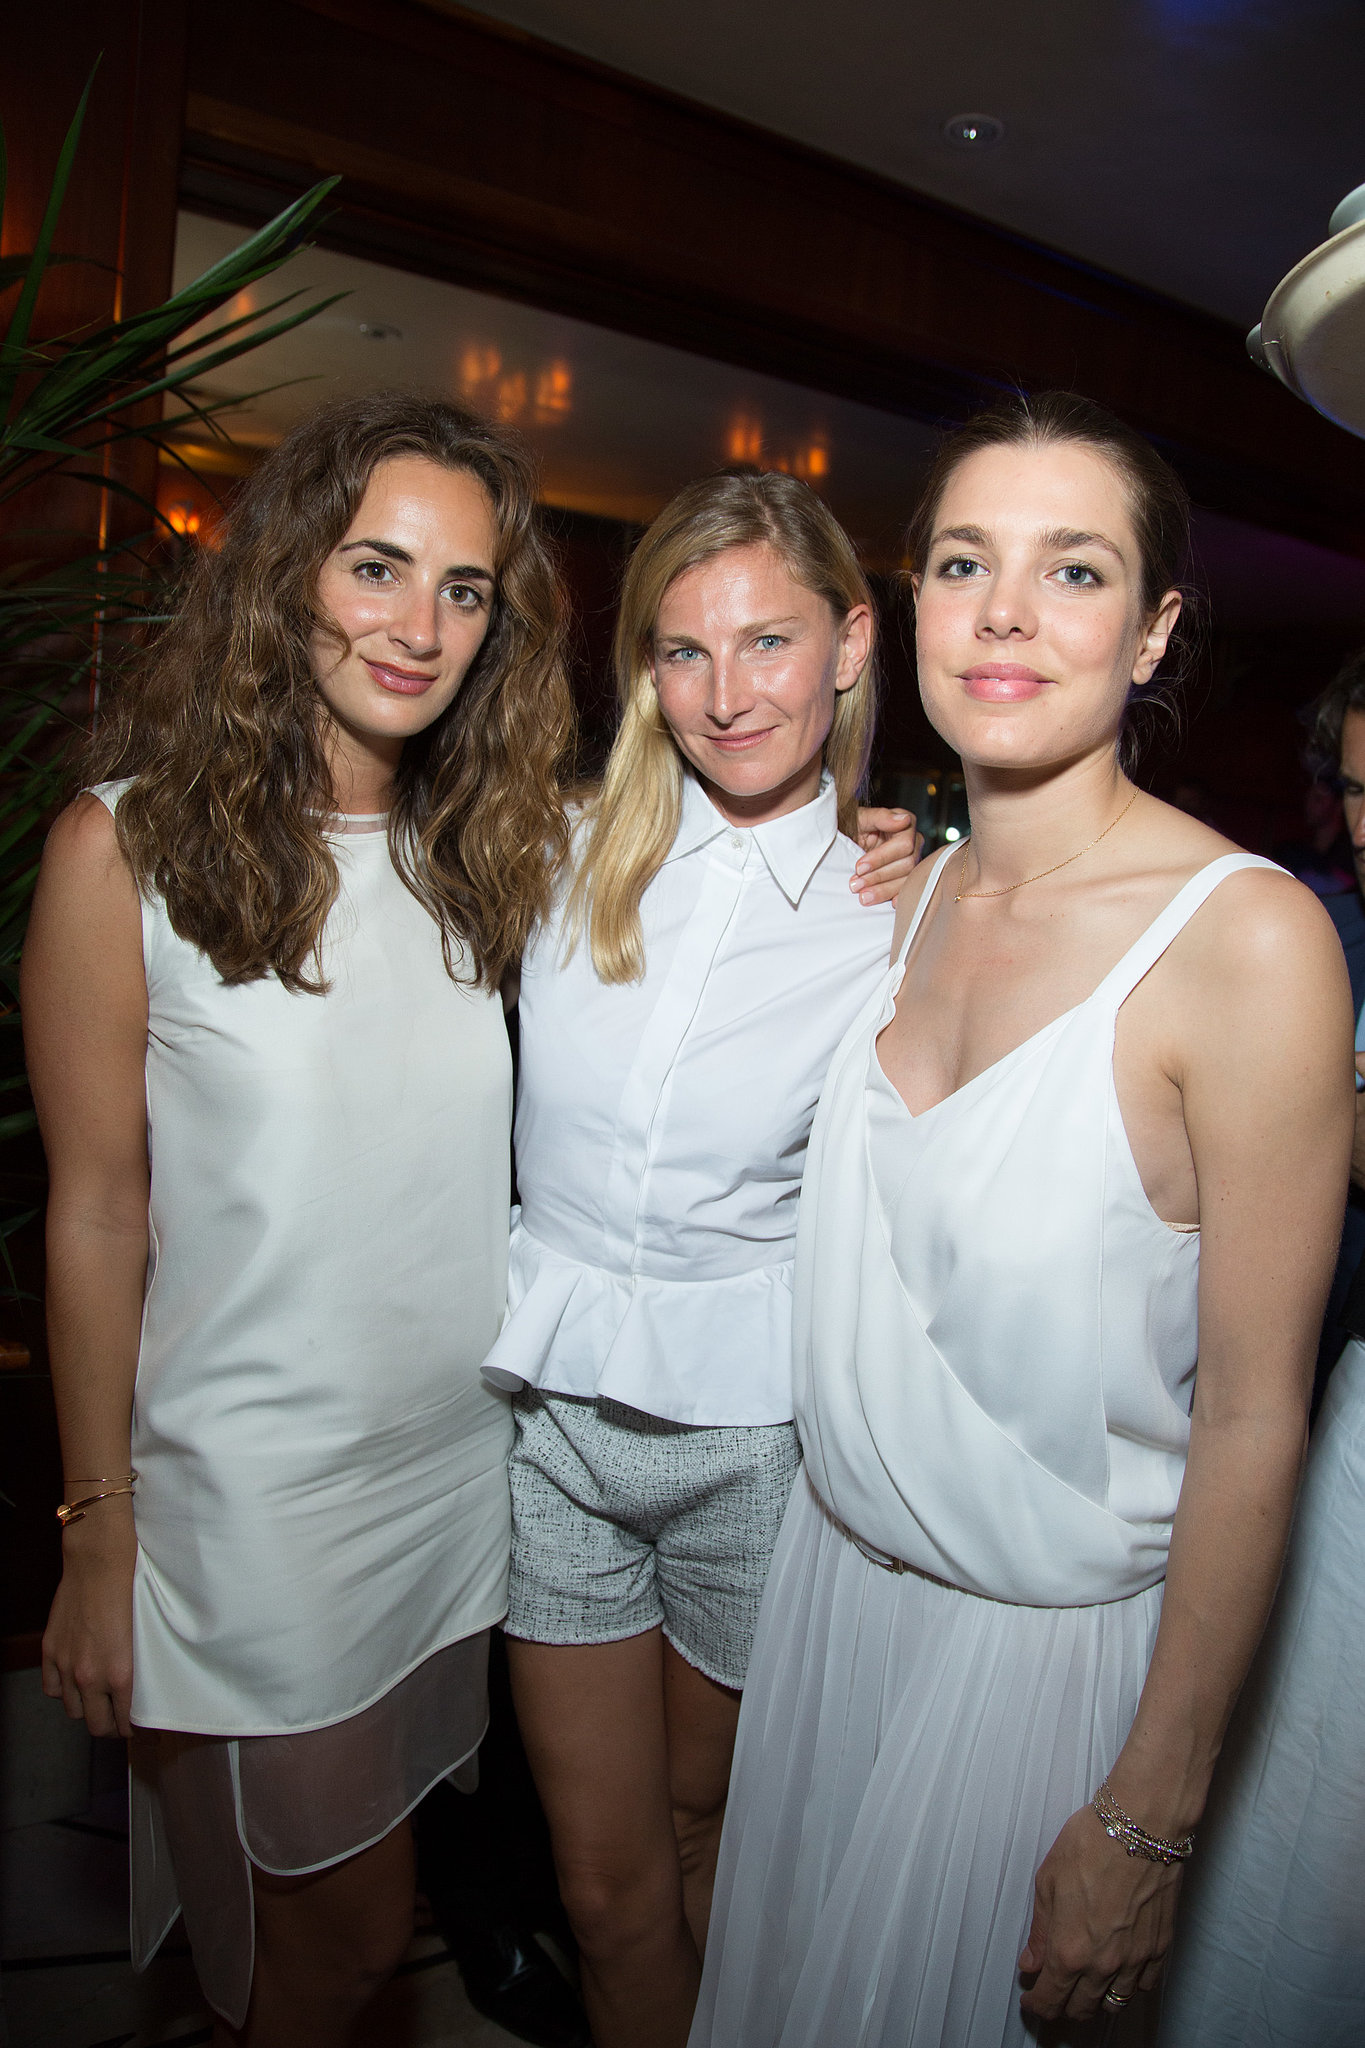 Elizabeth von Guttman and Charlotte Casiraghi joined a fellow partygoer in a crisp white palette at the launch of Eugenie Niarchos's jewelry collection.